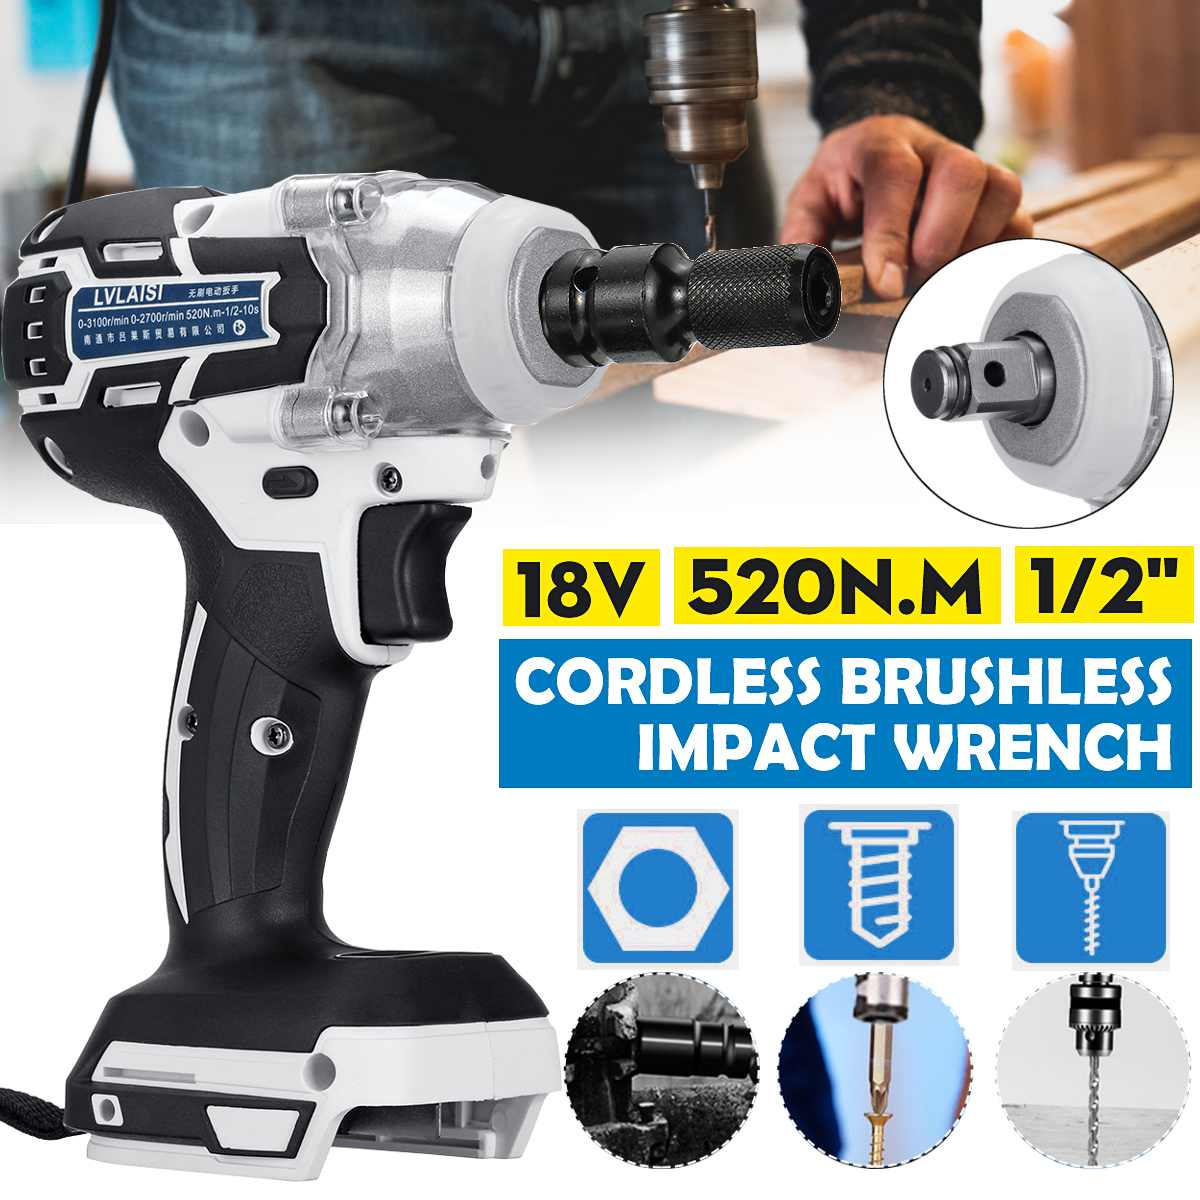 18V 520N.m Cordless Brushless Impact Wrench Stepless Speed Change Switch Adapted To 18V Makita Battery DTW285Z With Converter